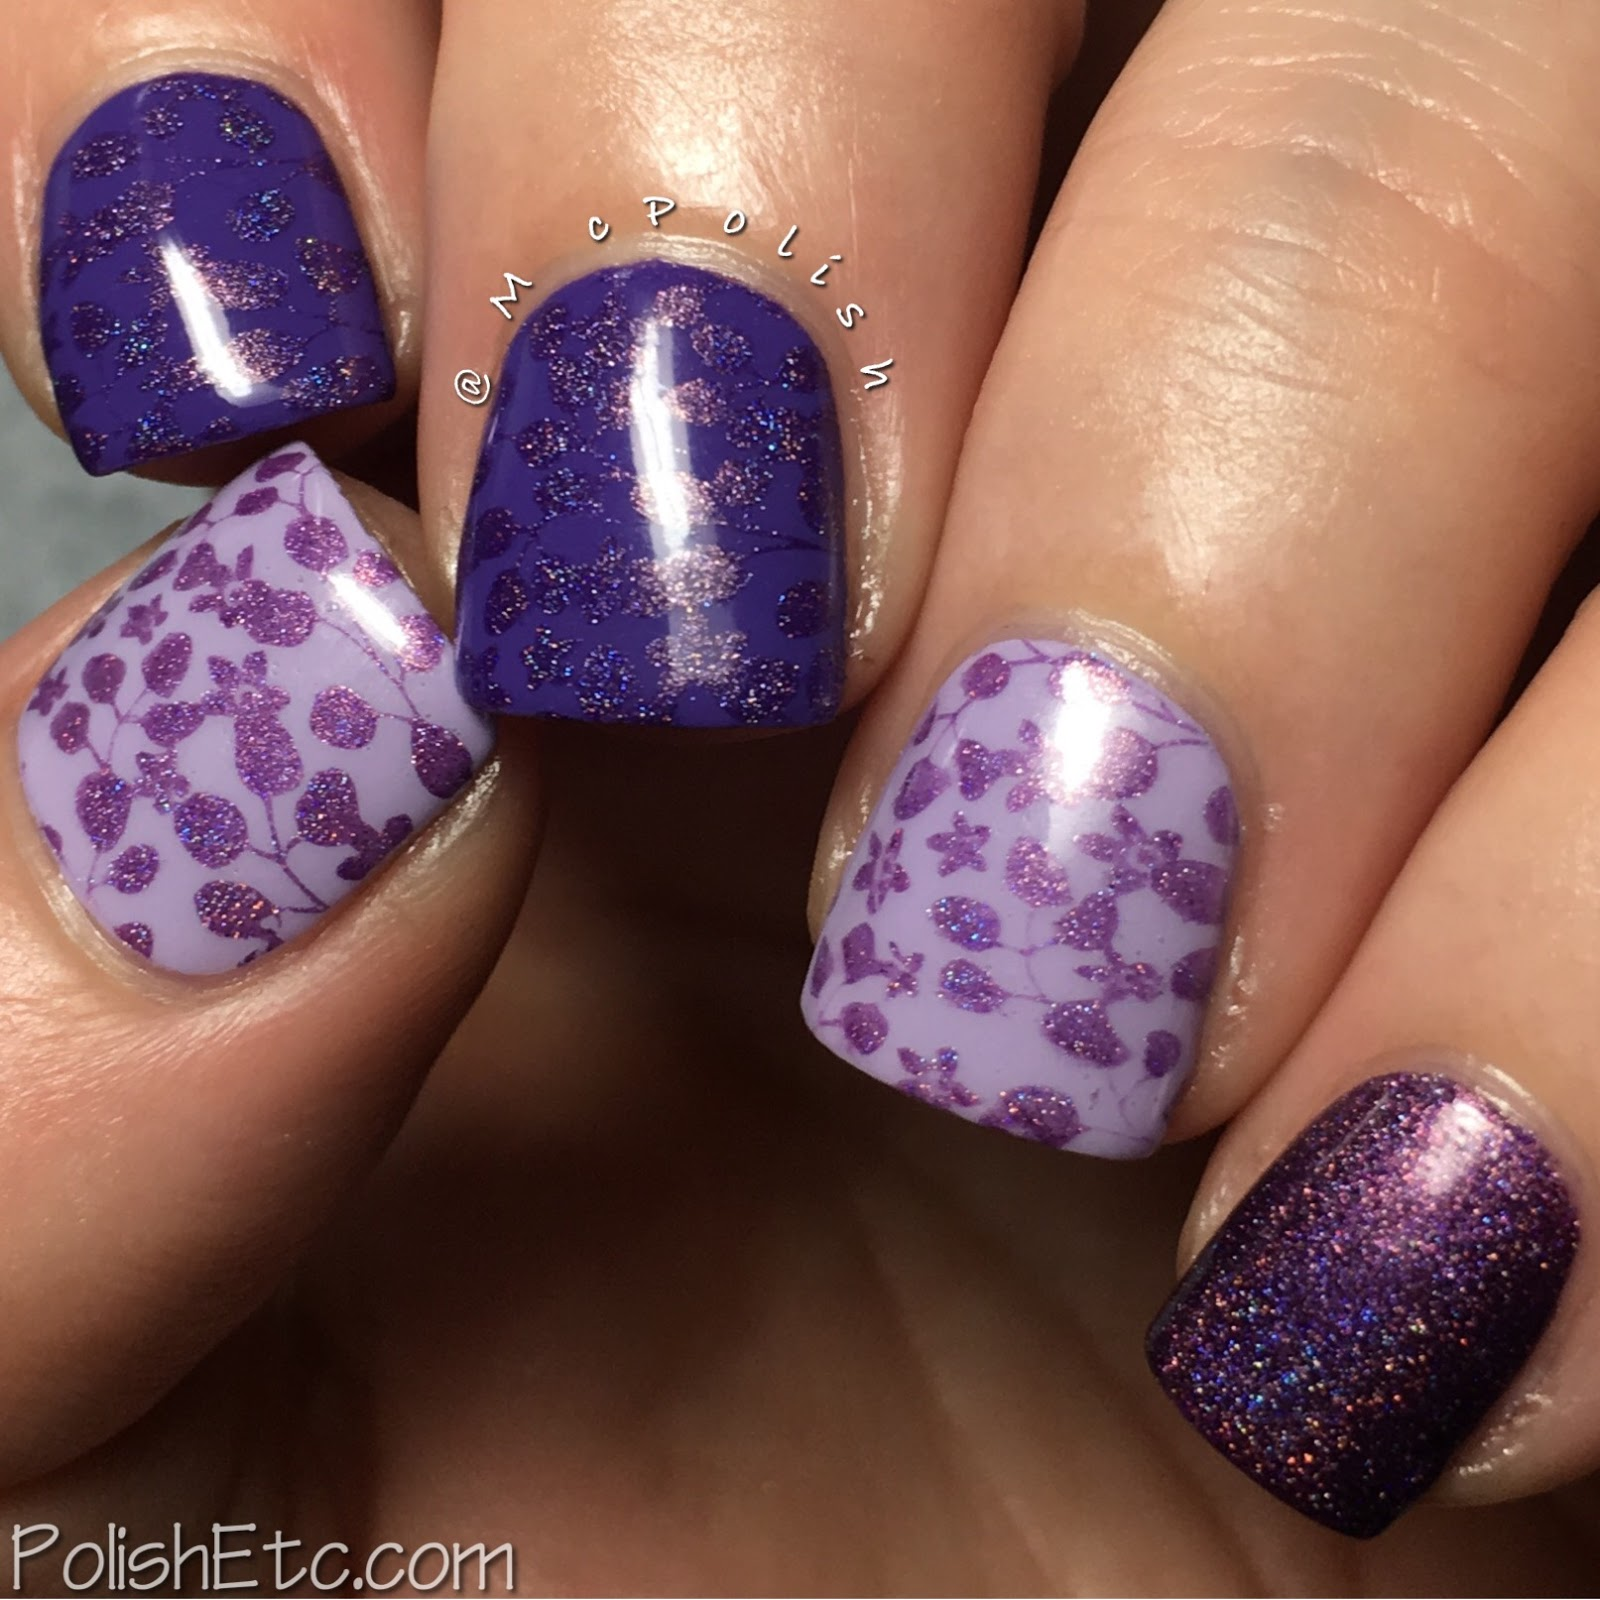 Celestial Cosmetics stamping polishes for Color4Nails - McPolish - Orchid